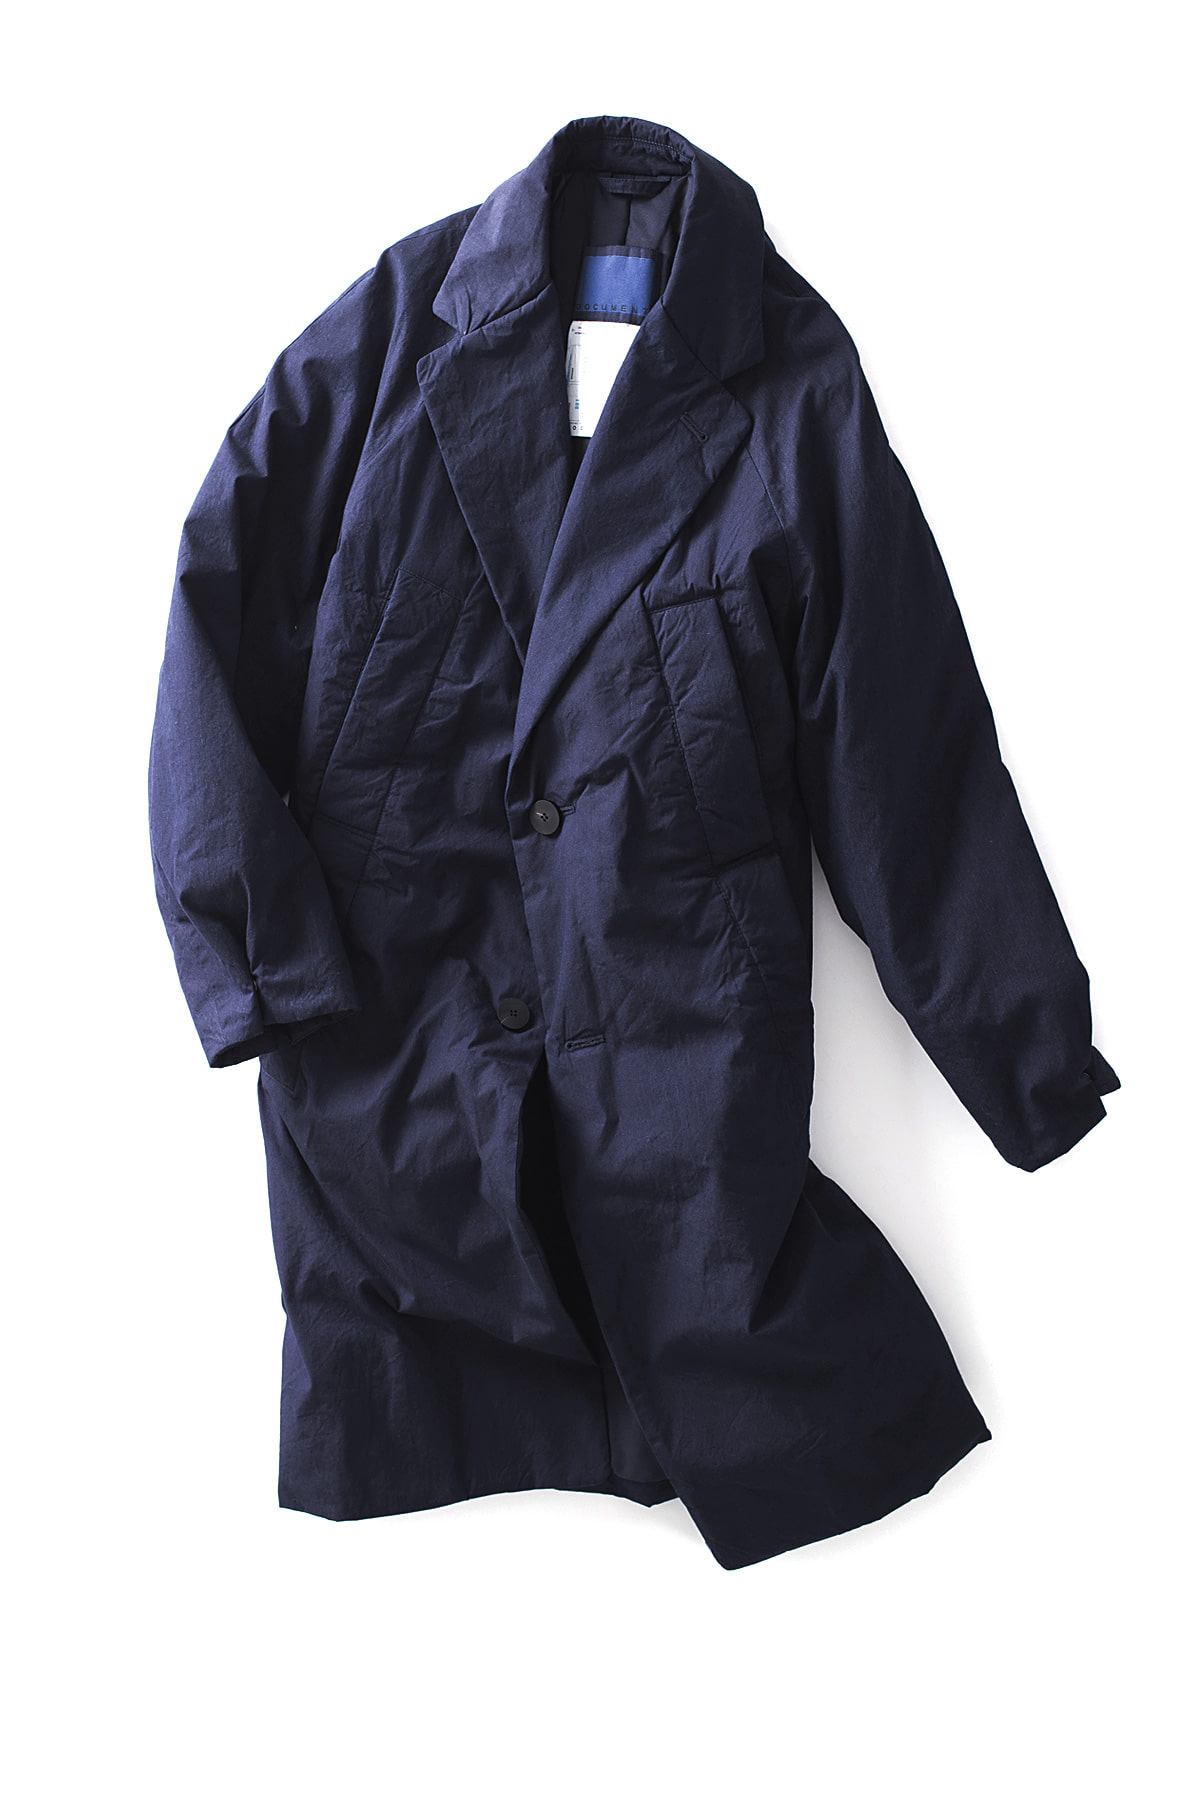 Document : Indigo Padded Coat (Indigo)